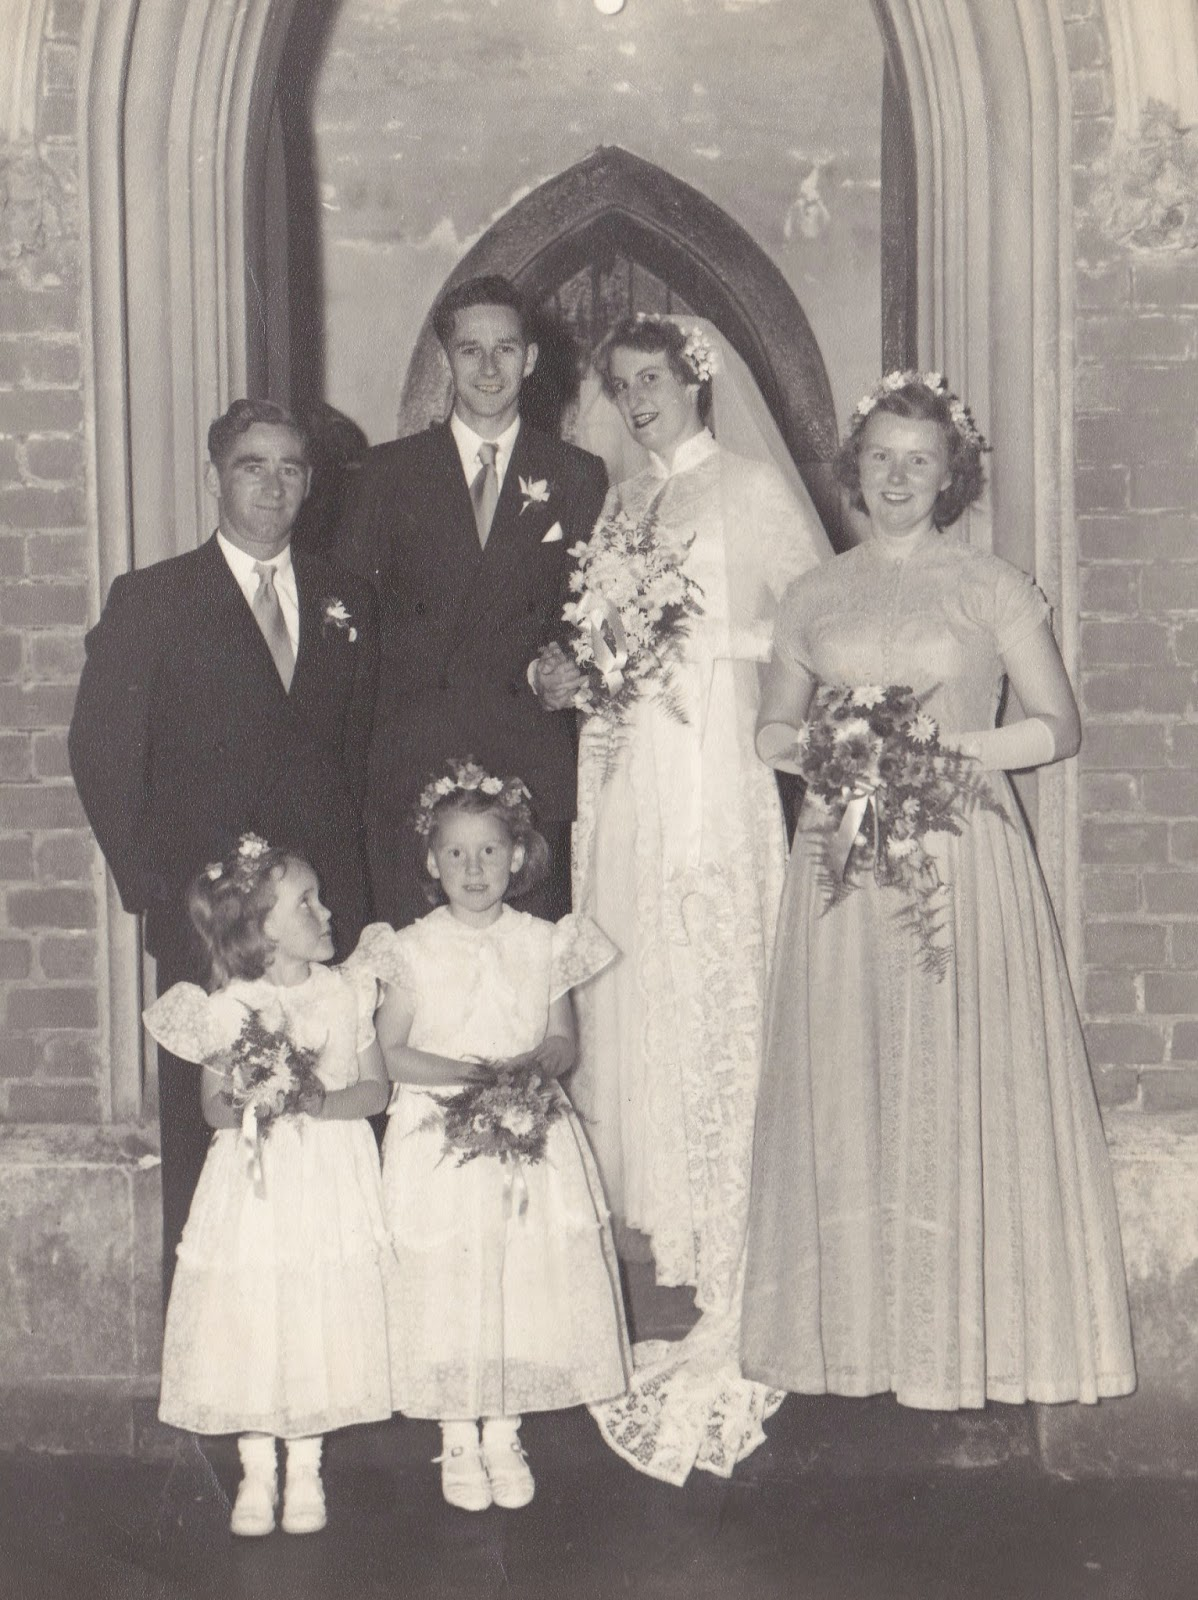 My cute little sister Linda and me are the Flowergirls at our Aunty's Wedding 1951